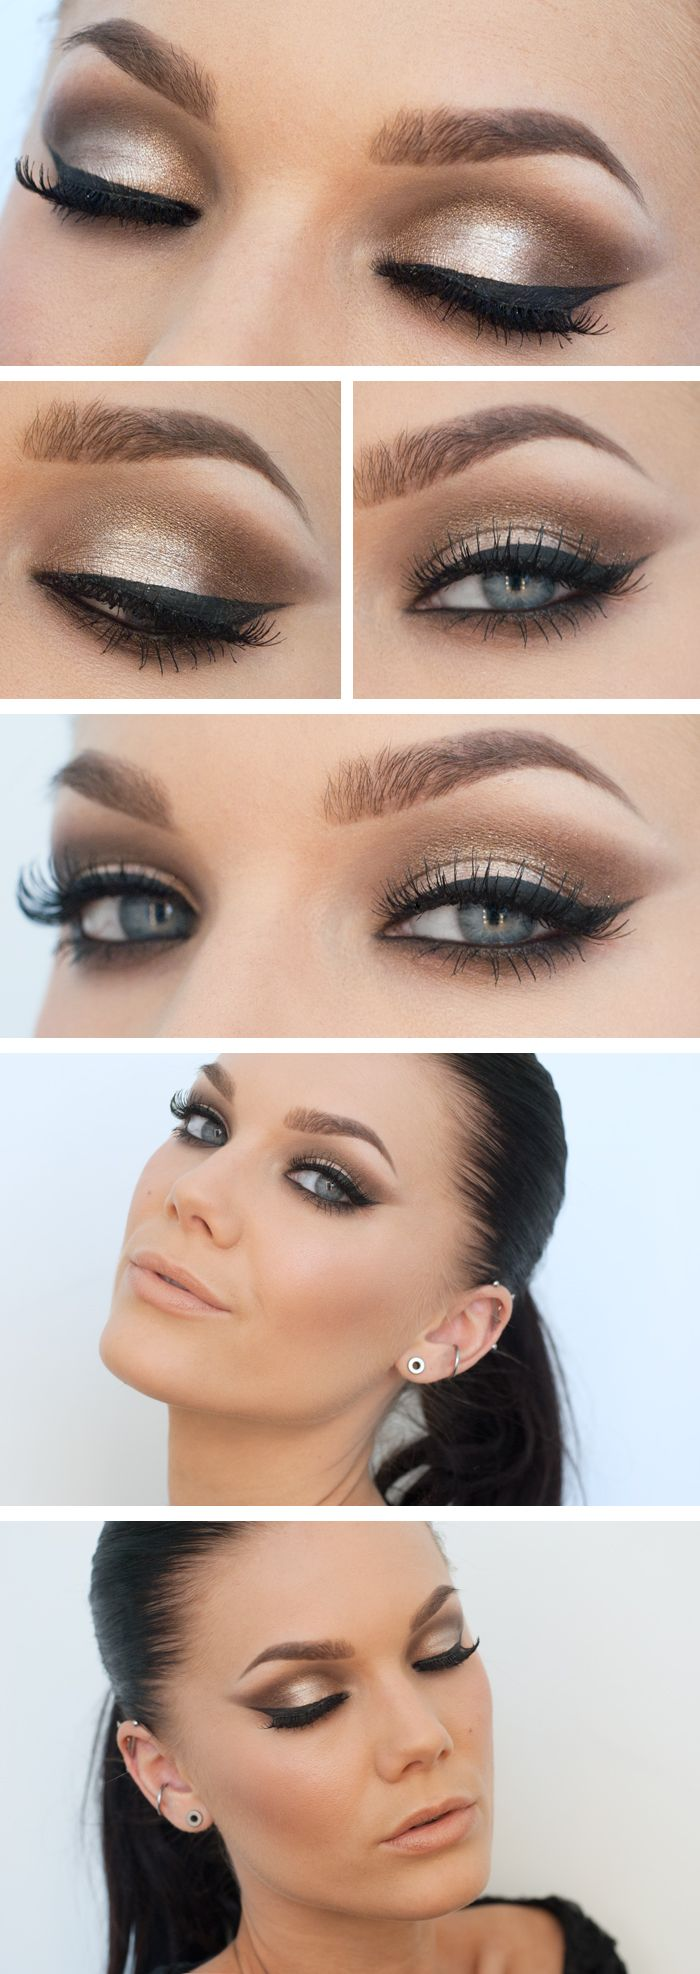 I love the eyeshadow! Not the website linked to it